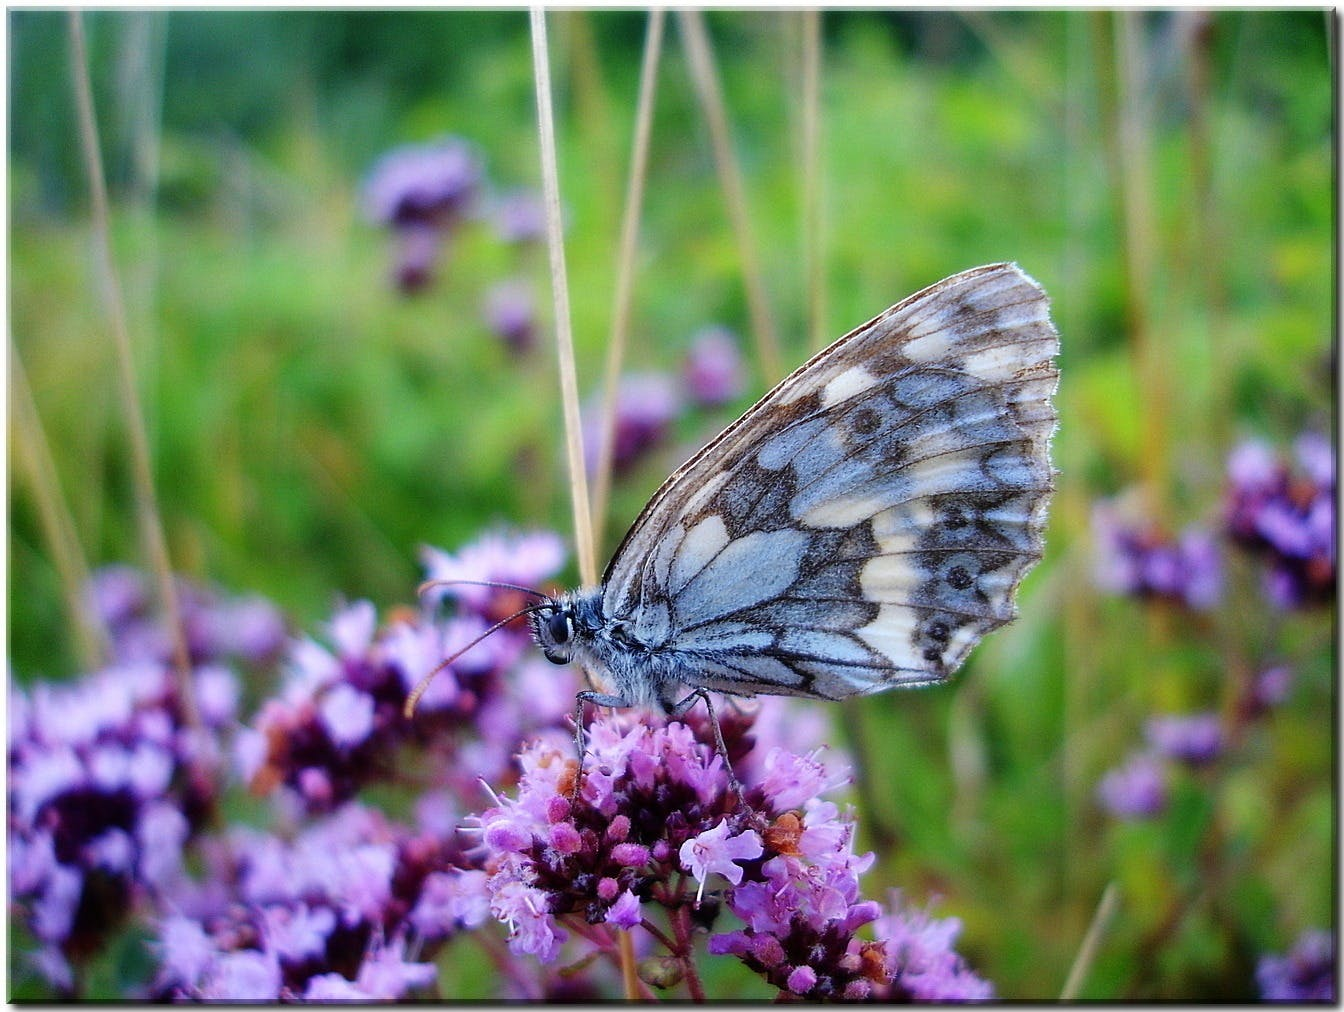 Grey and Blue Butterfly on Purple Flower during Daytime